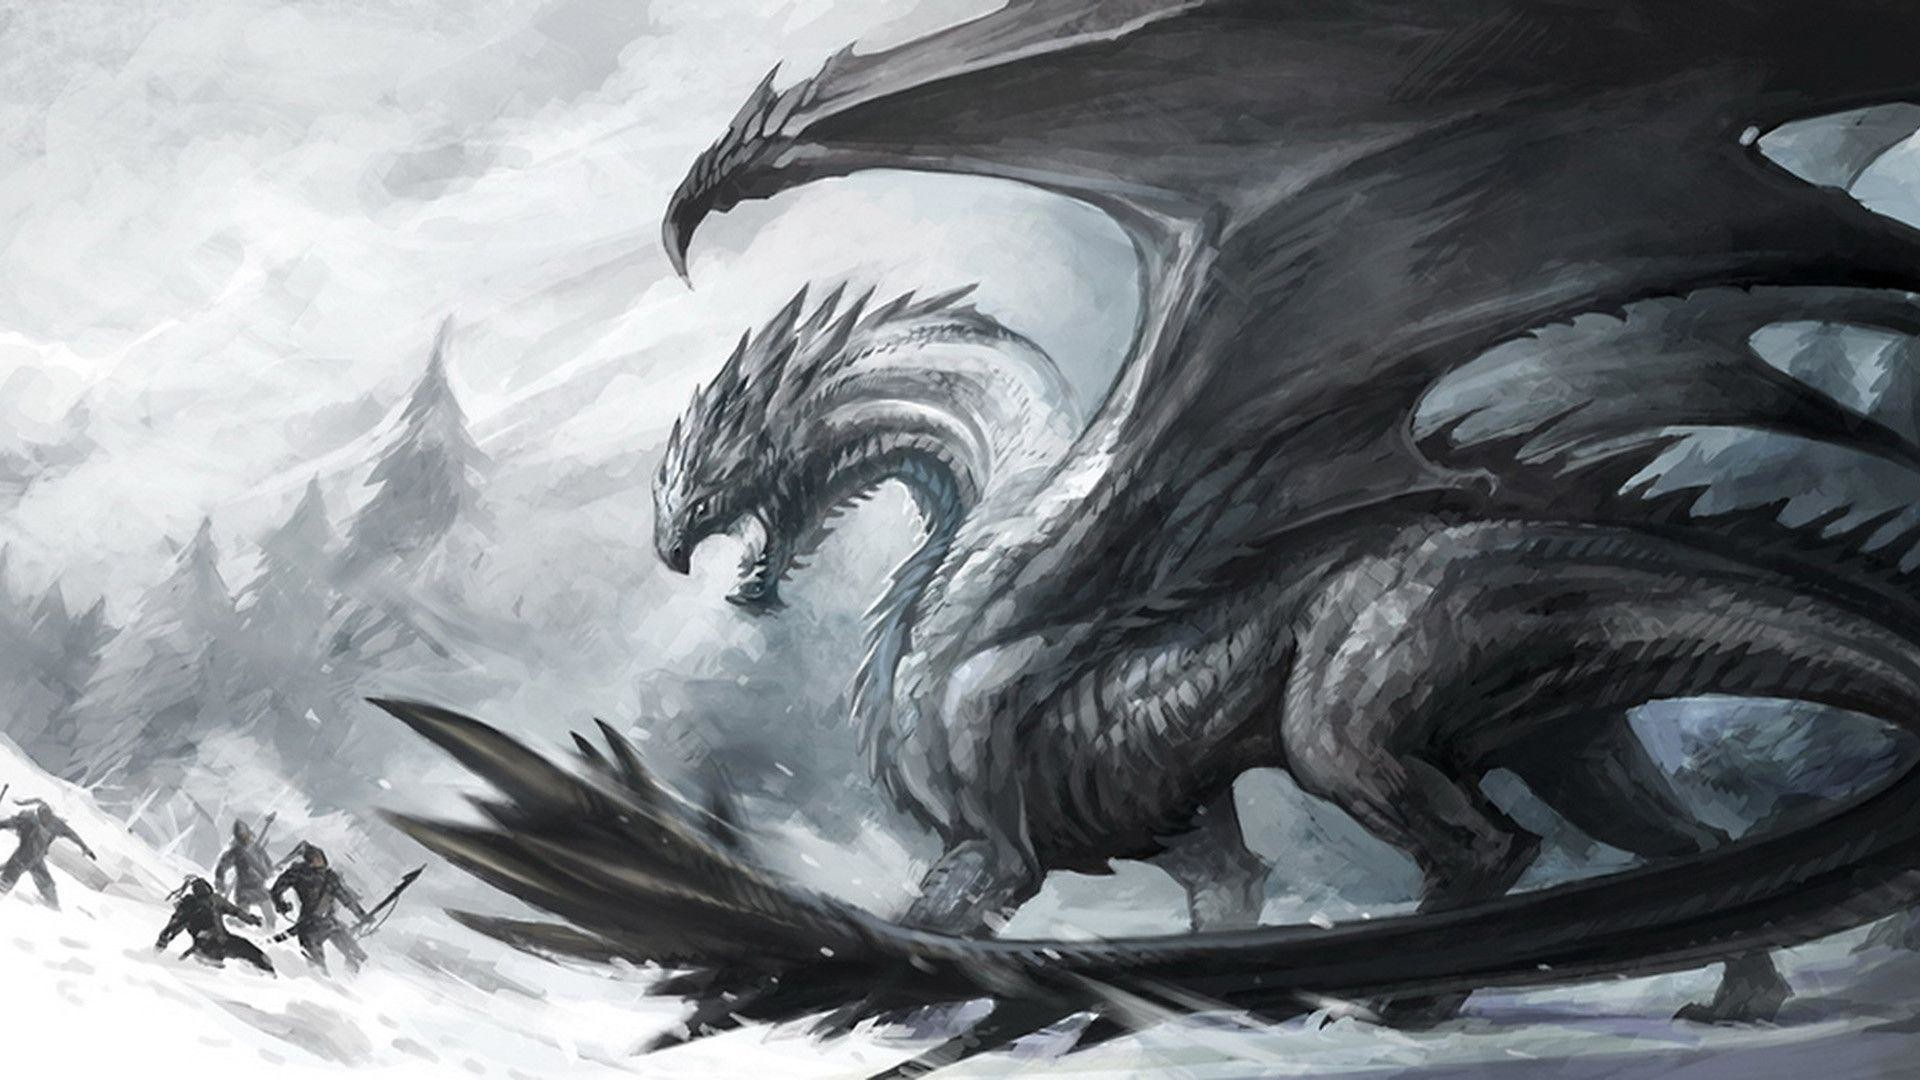 Black And White Dragon Wallpaper 67 Images